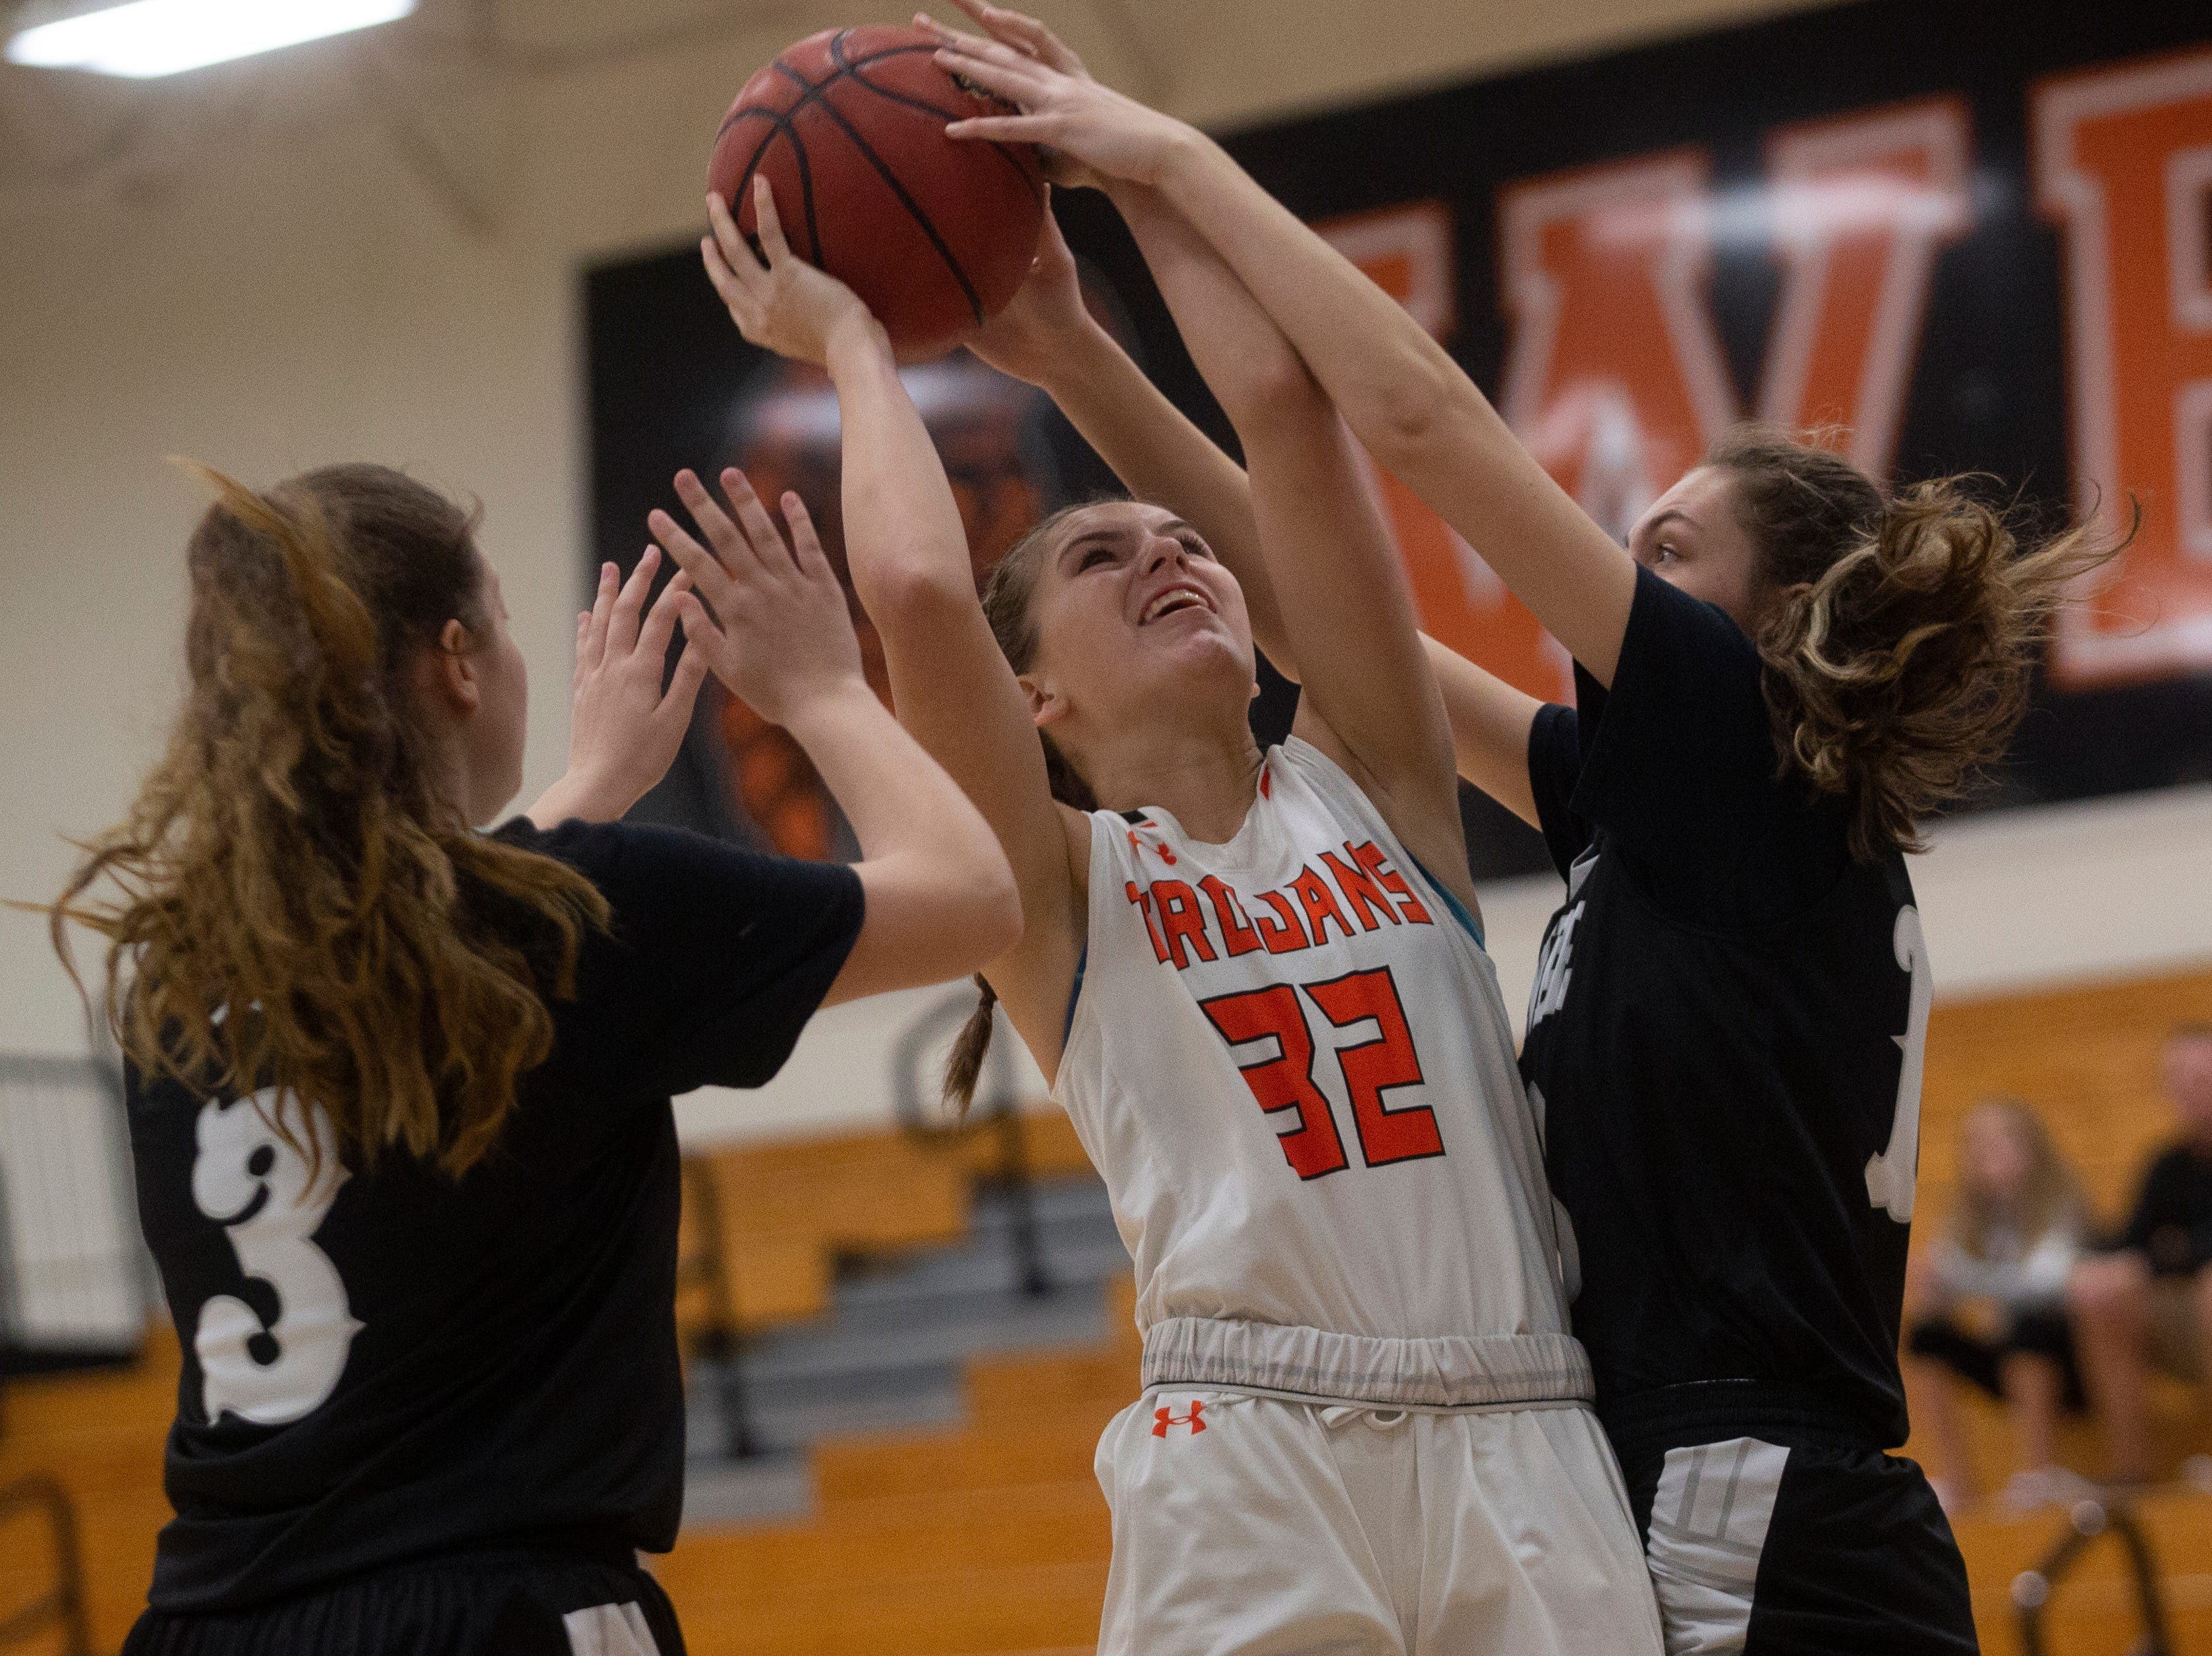 Lely High School's Katie Miller attempts a shot as Mariners' Brianna Childs and Carlee Groeneveld defend the basket, Thursday, Feb. 6, 2019, at Lely High School.